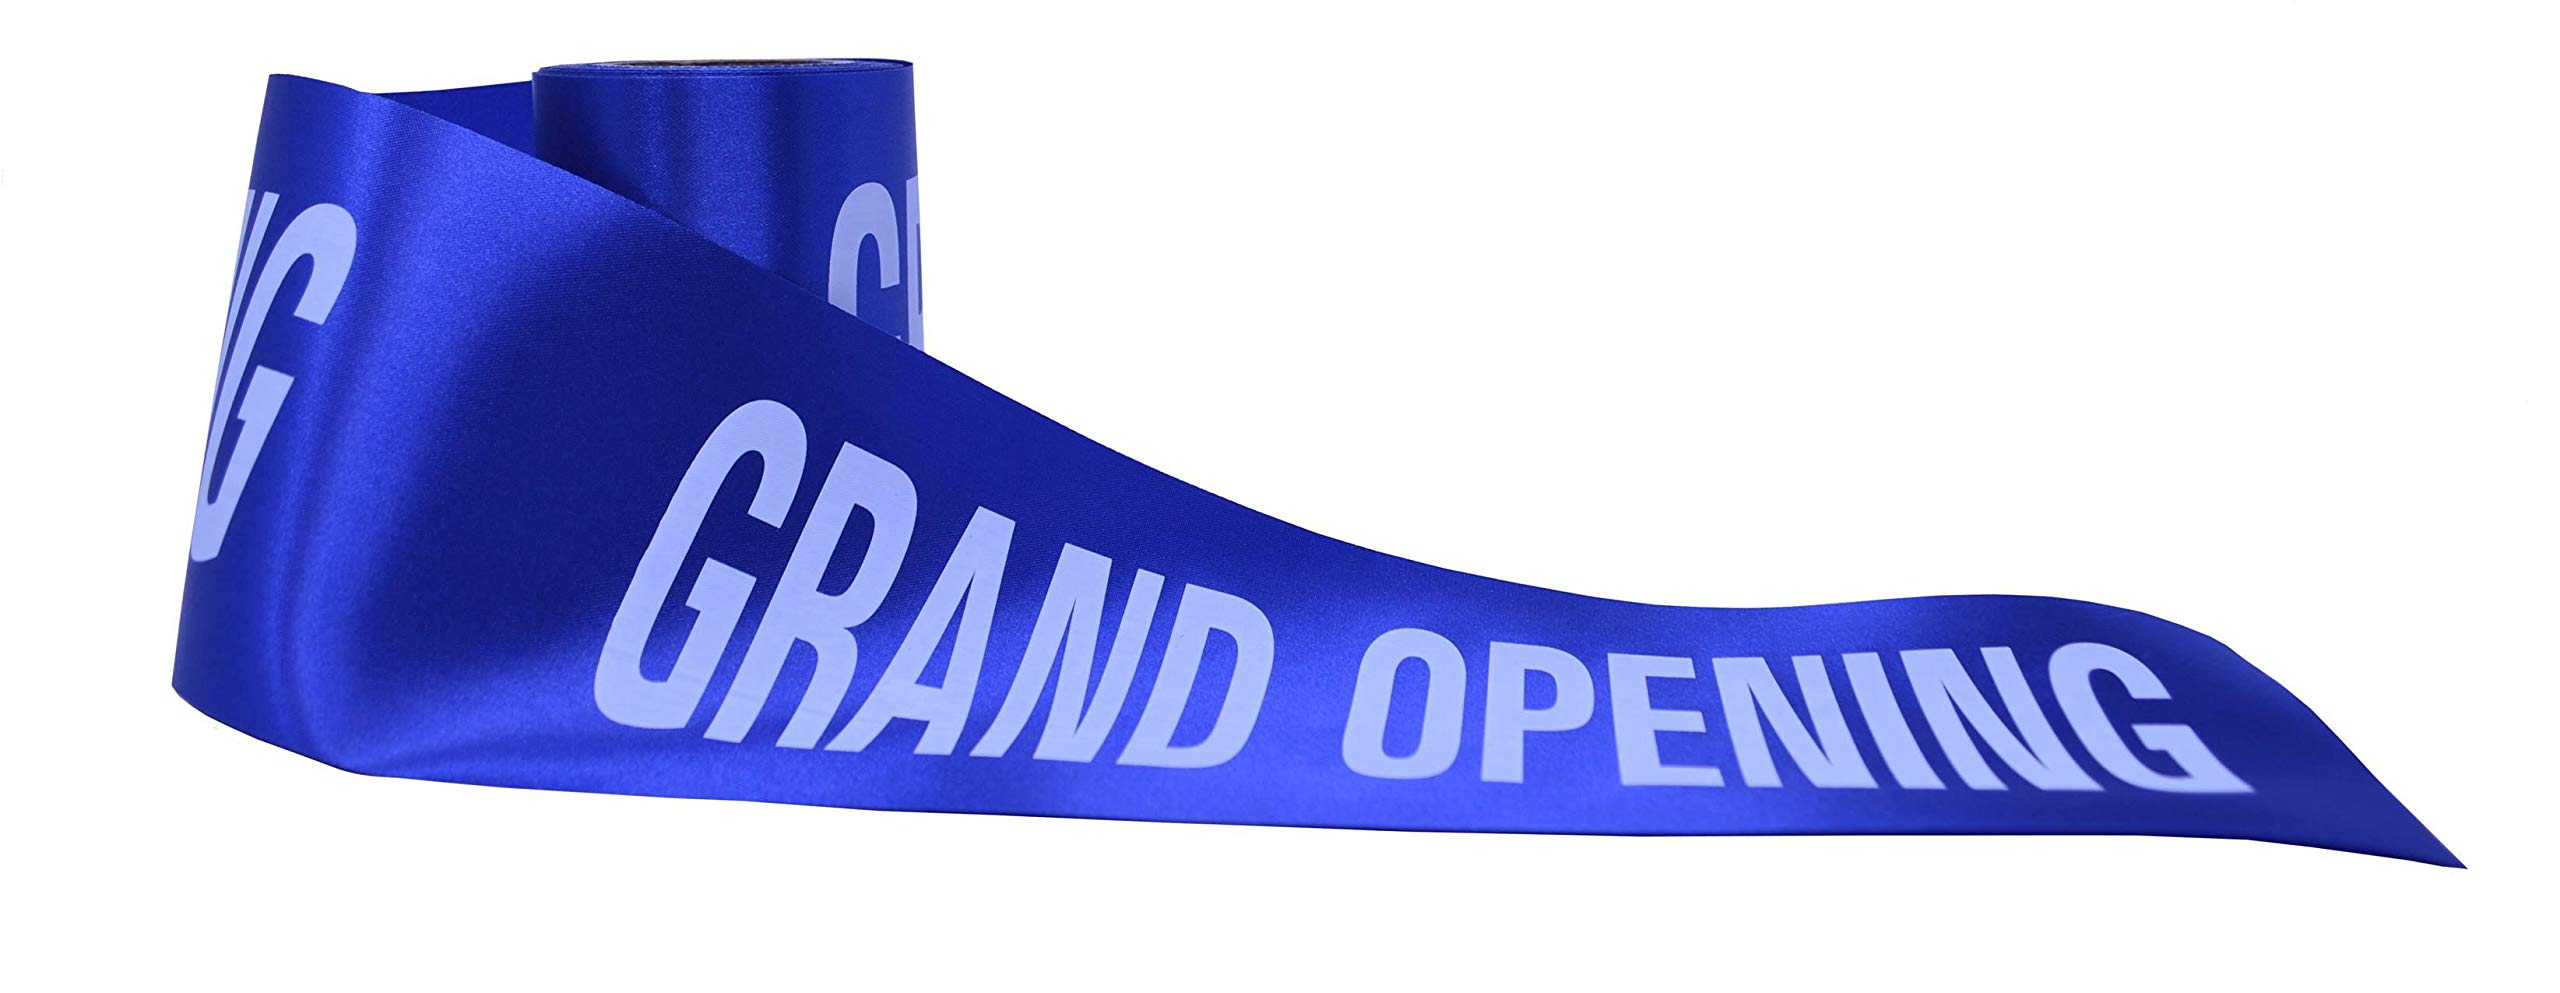 Printed Grand Opening 6 inch 25 Yards Ceremonial Ribbon by Wonder Clothing